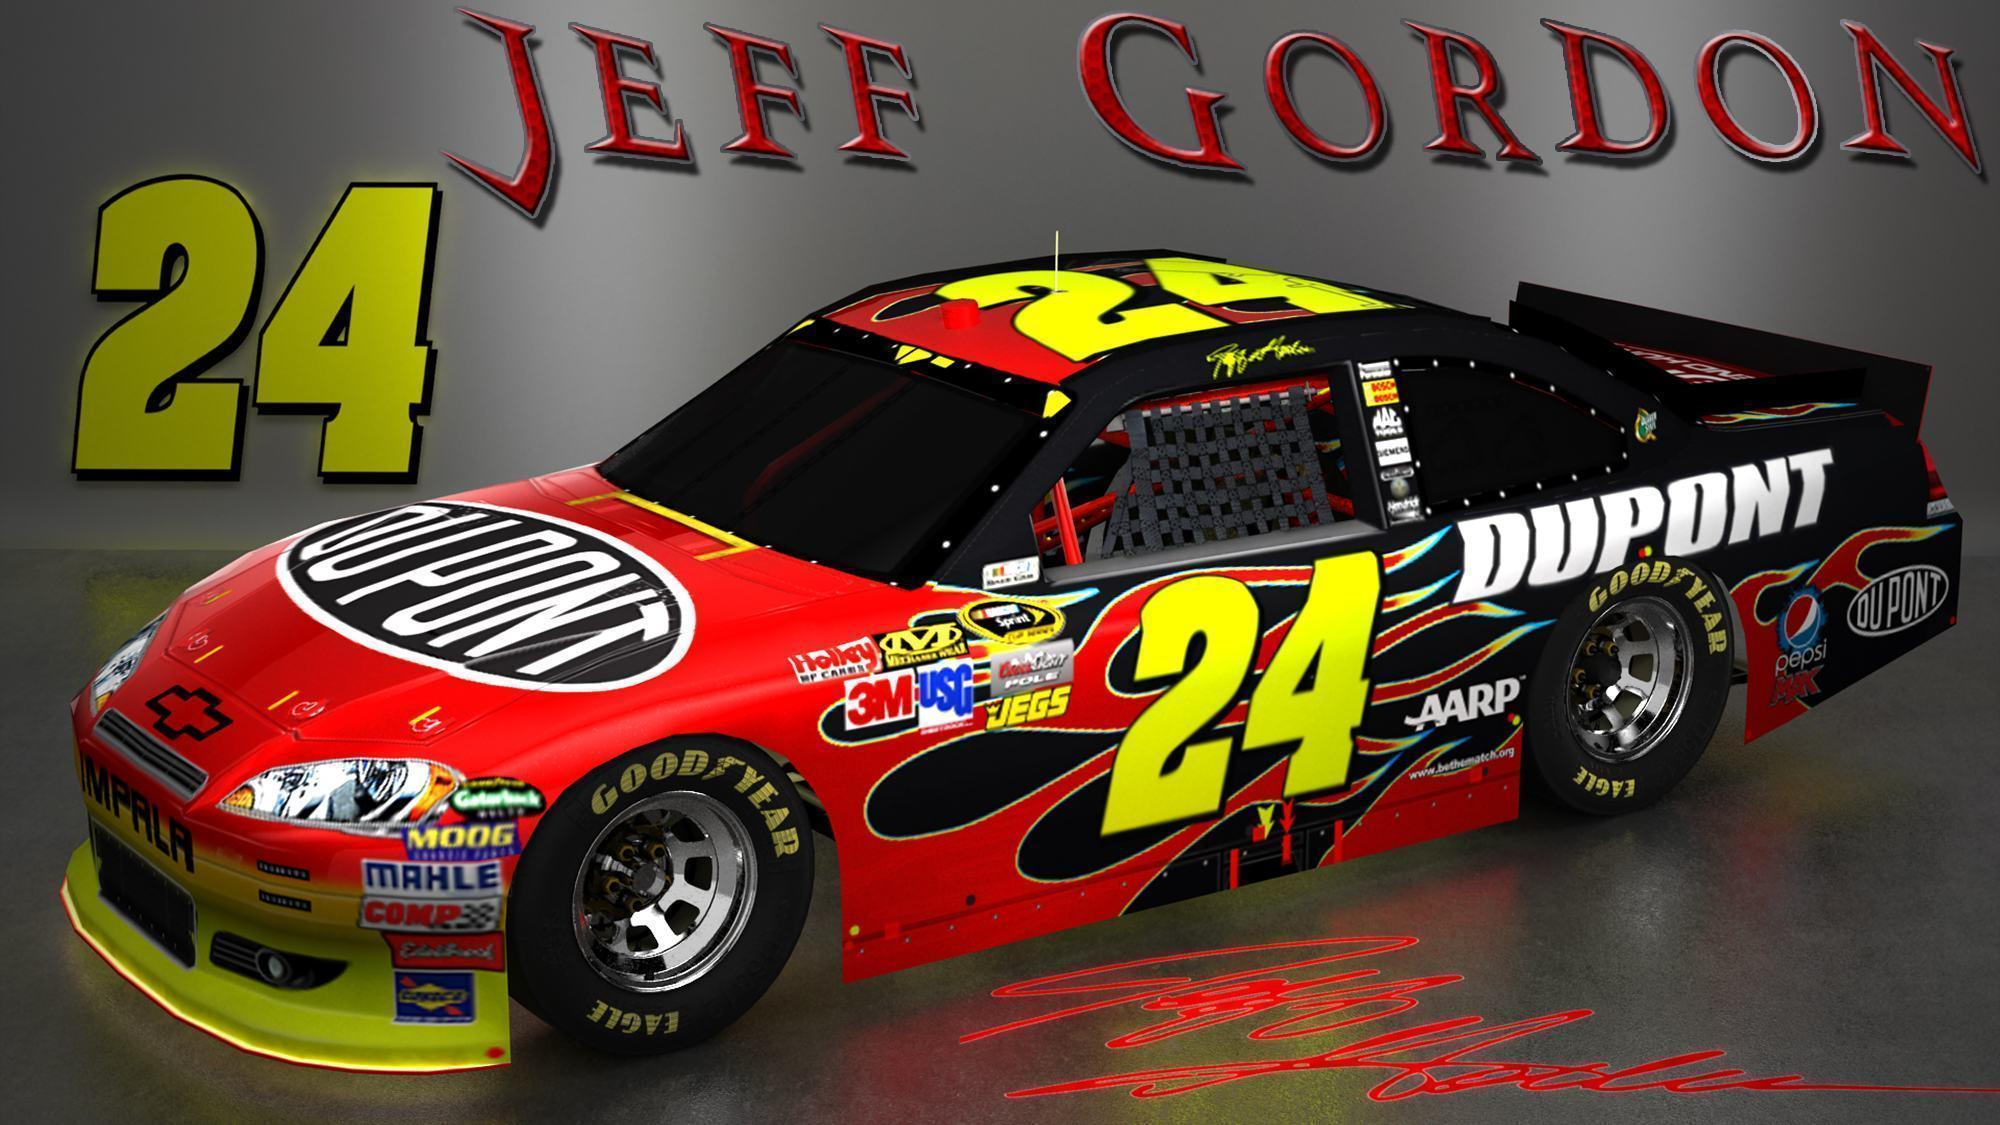 jeff gordon desktop wallpaper - photo #9